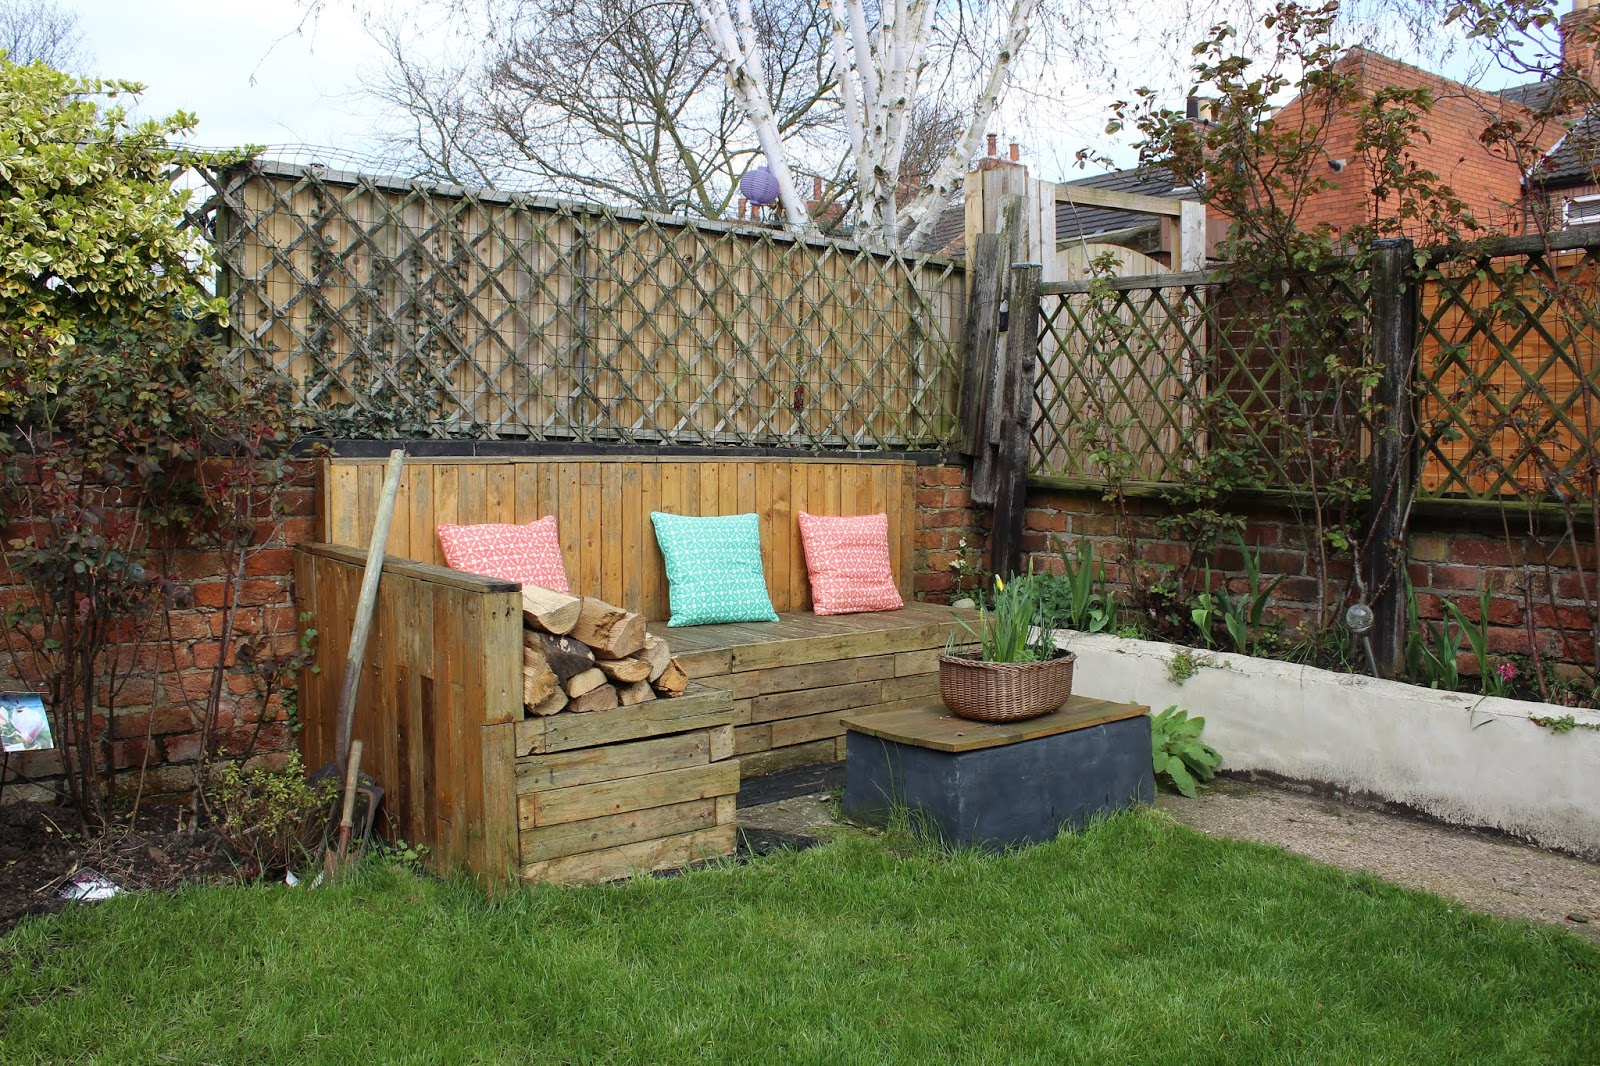 Pallet Seating Corner with Table in Garden